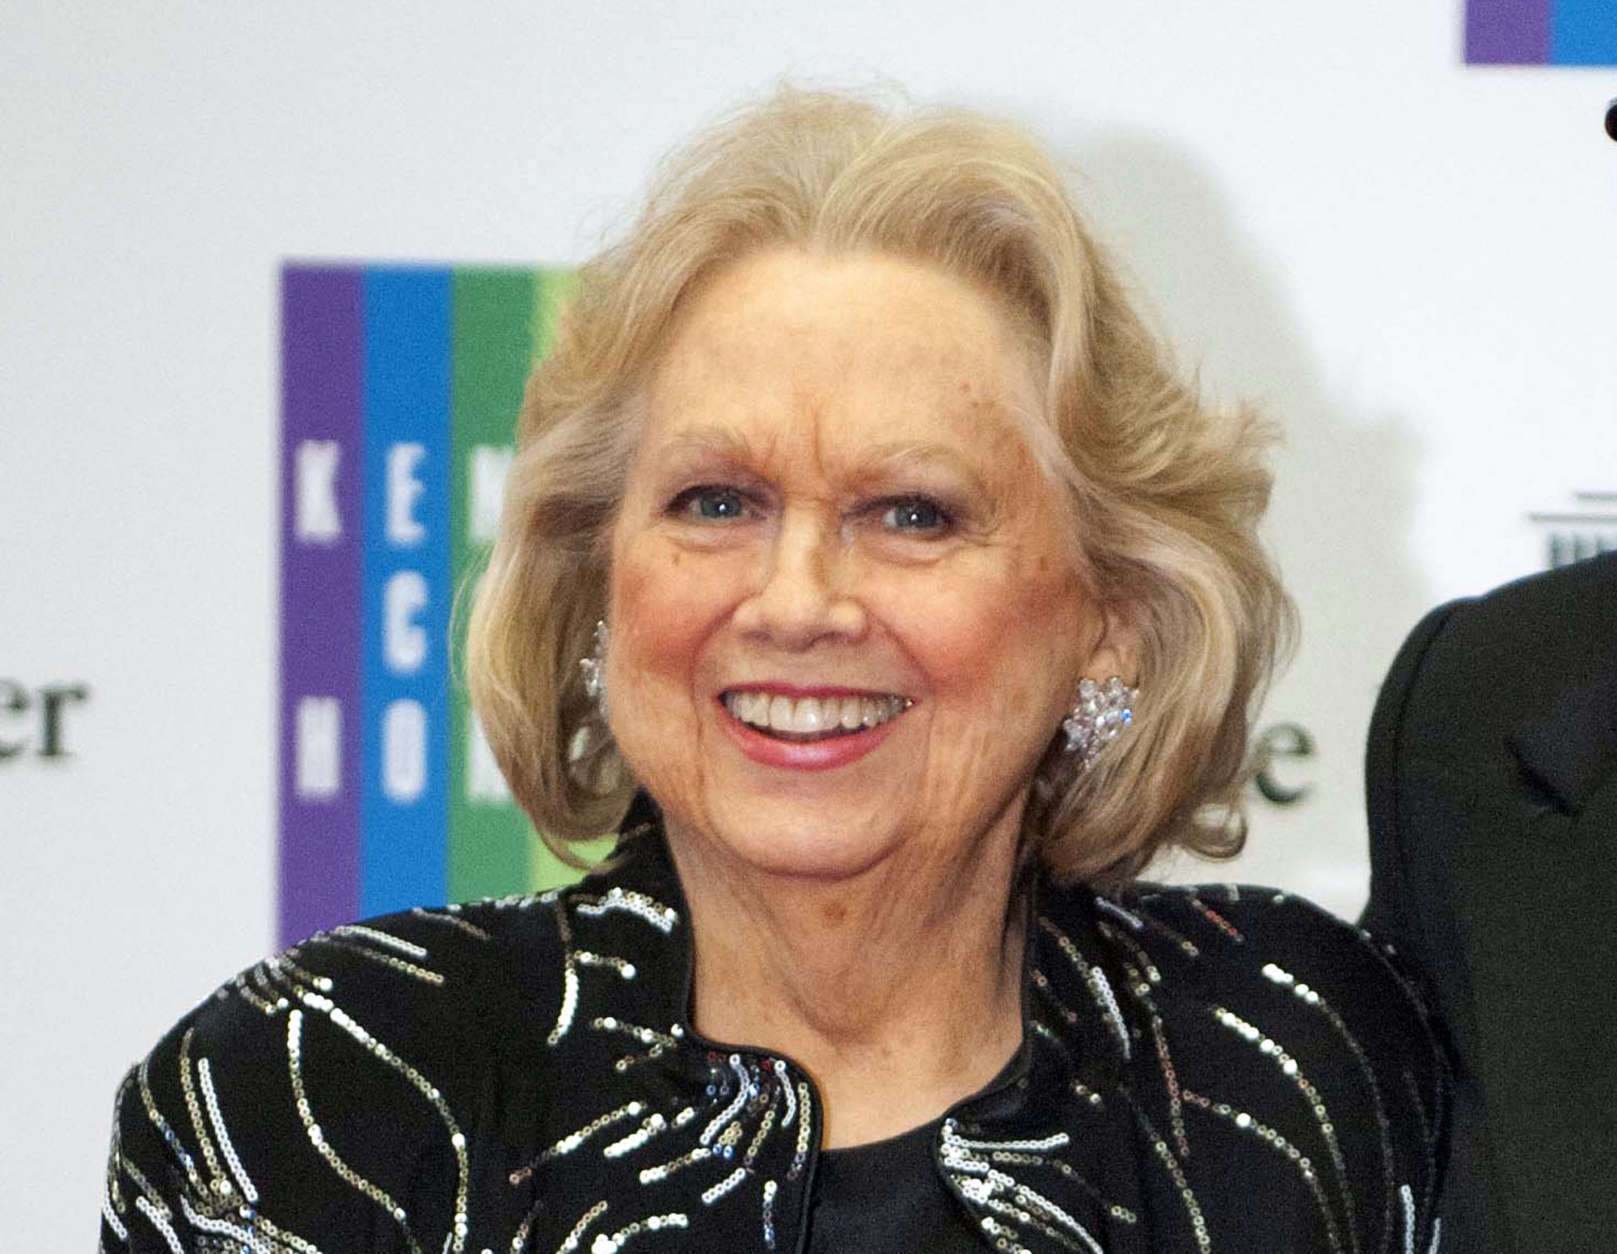 """FILE - In this Dec. 7, 2013 file photo, Barbara Cook arrives at the State Department for the Kennedy Center Honors gala dinner in Washington. Cook's return to a New York stage in a show about her life has been postponed. Producers said Monday, March 28, 2016, that """"Barbara Cook: Then and Now,"""" conceived by James Lapine and directed by Tommy Tune, will not be staged this spring at the New World Stages complex. (AP Photo/Kevin Wolf, File)"""